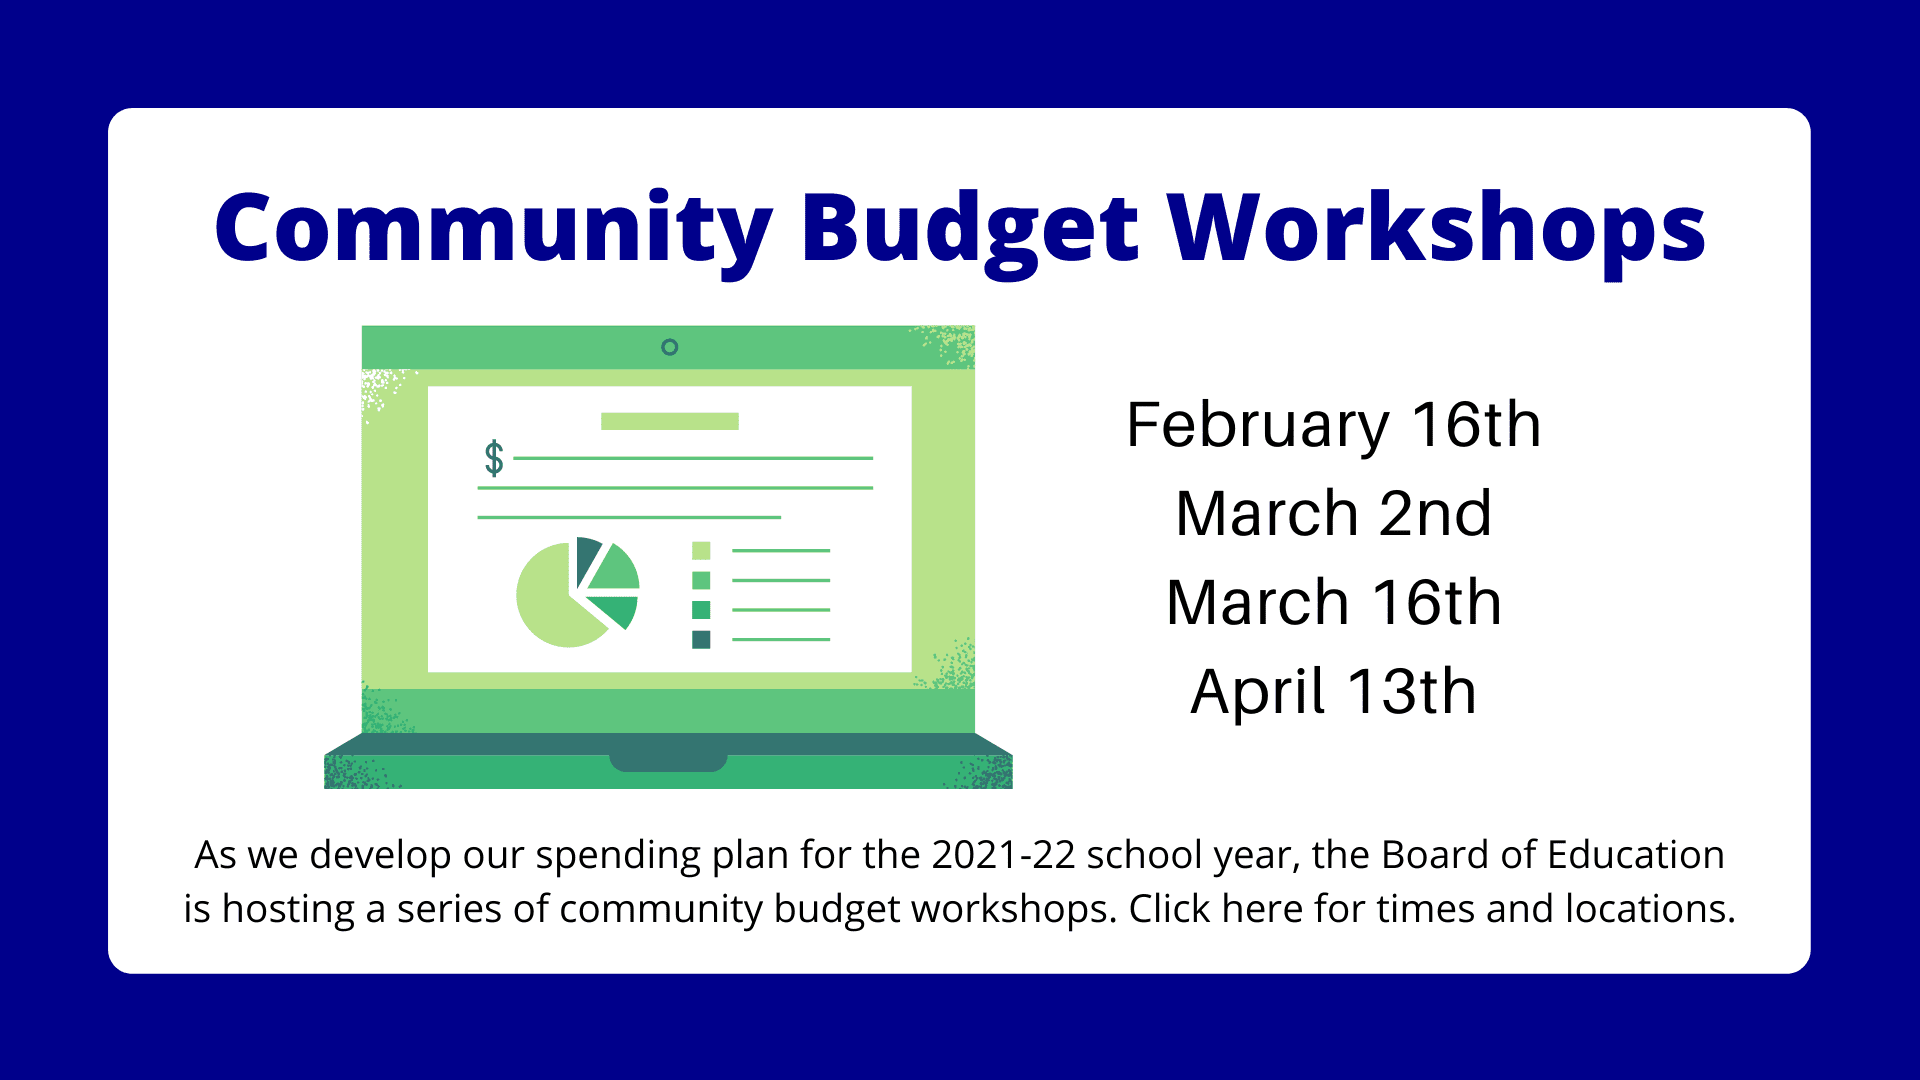 community budget workshops February 2, March 2, March 16, April 13